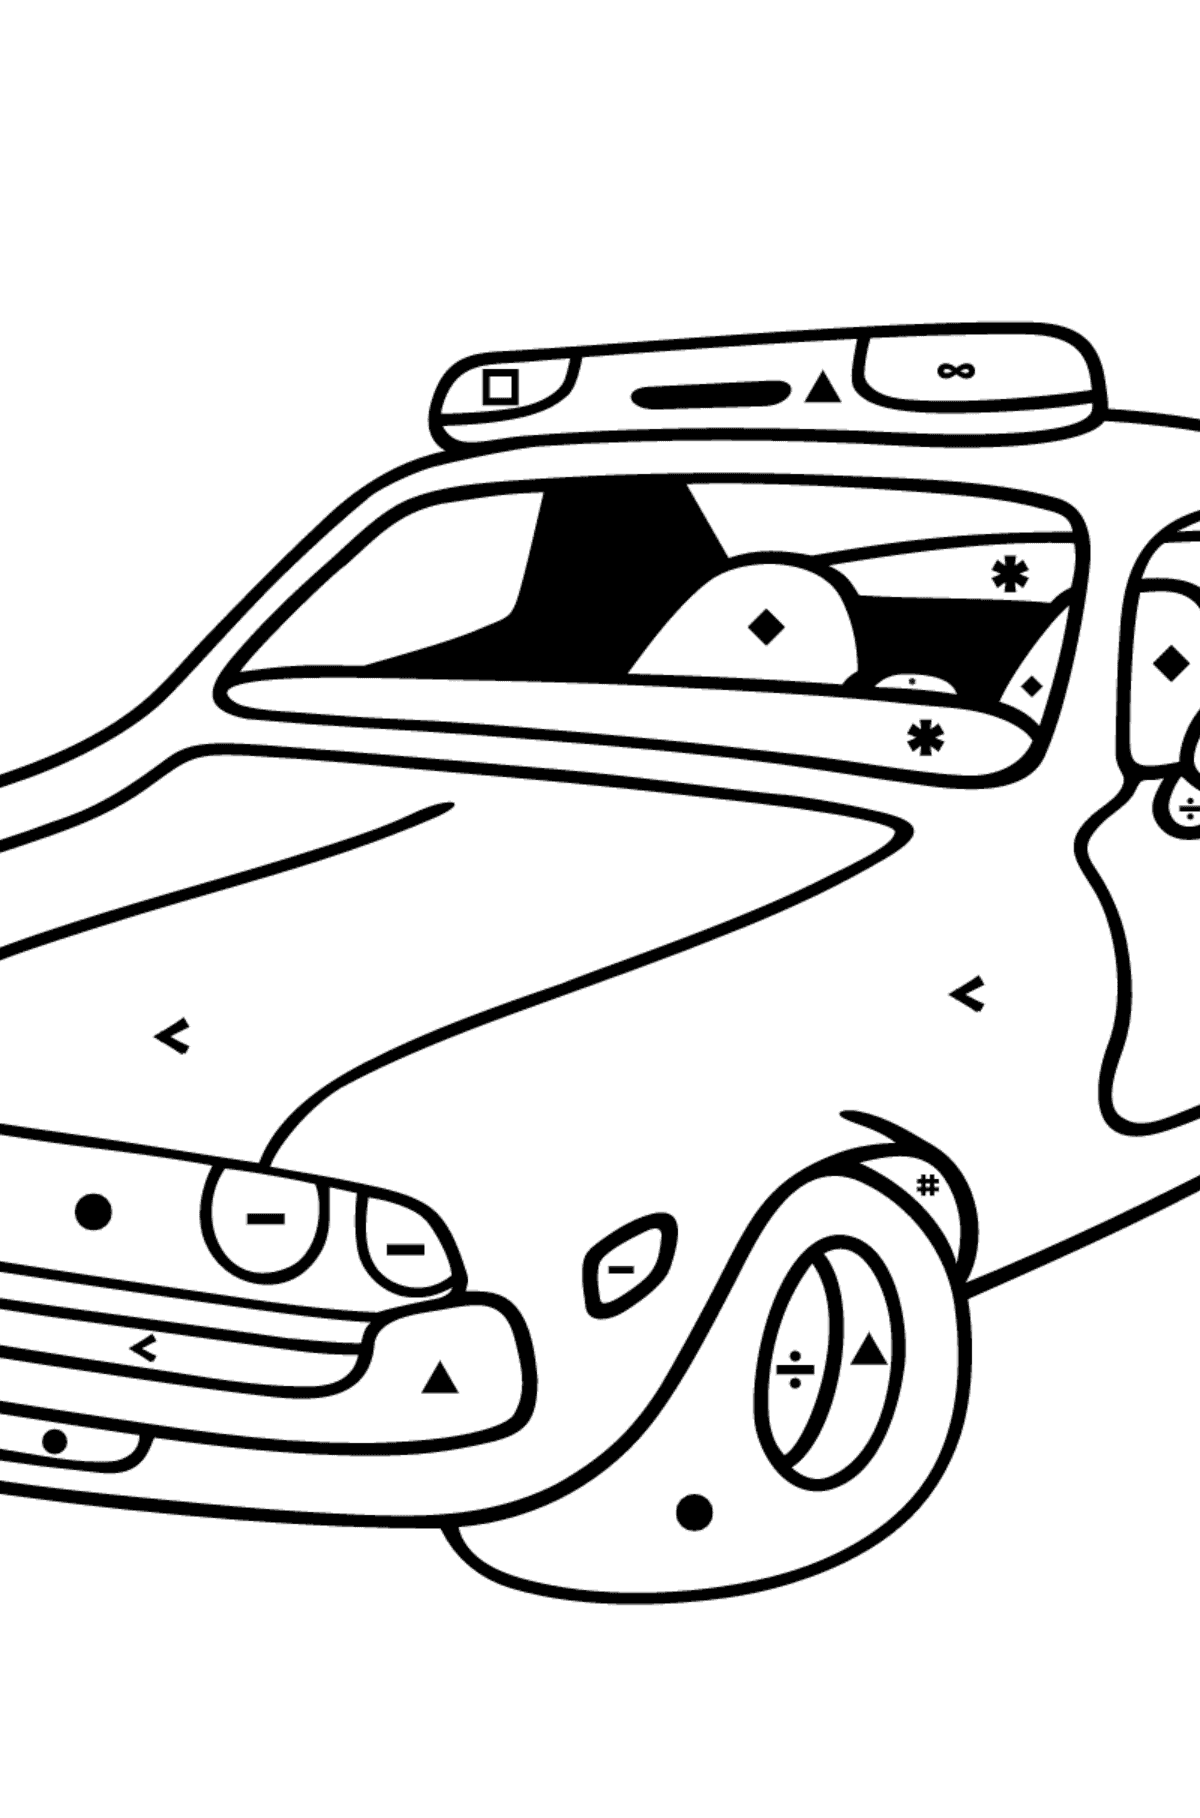 Coloring Page - A Red Police Car for Kids  - Color by Special Symbols